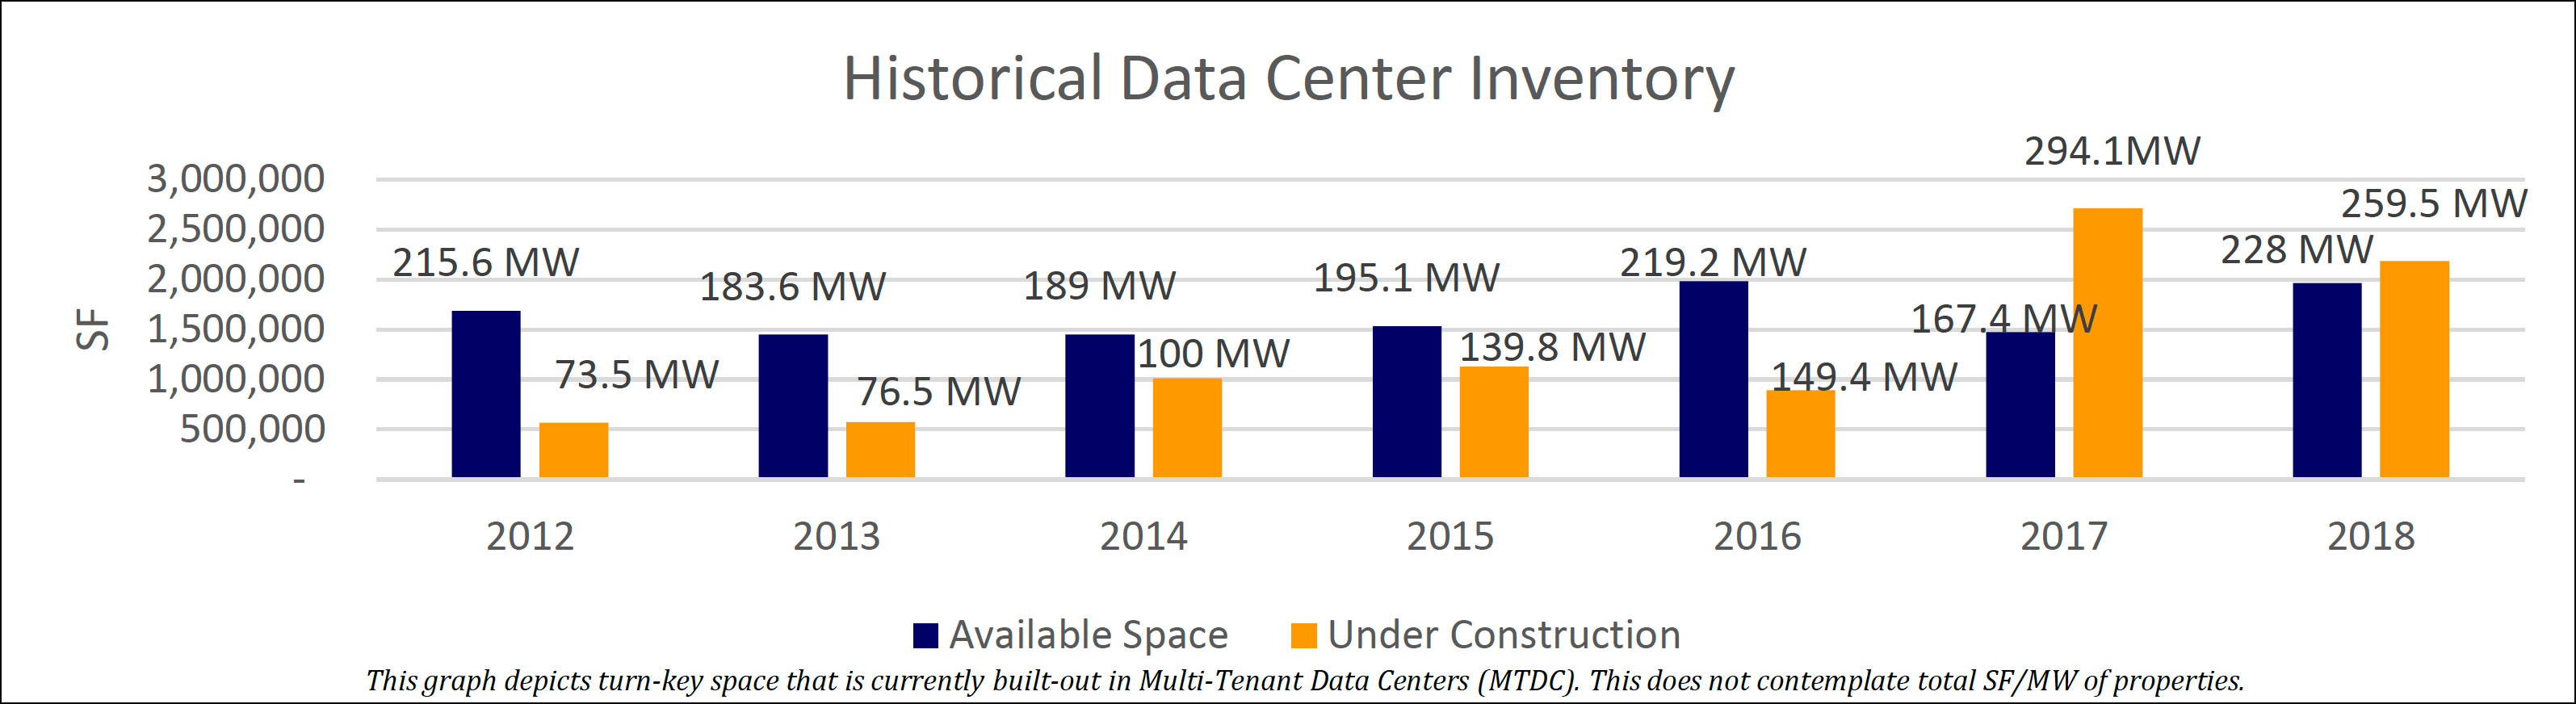 Historical Data Center Inventory-2019